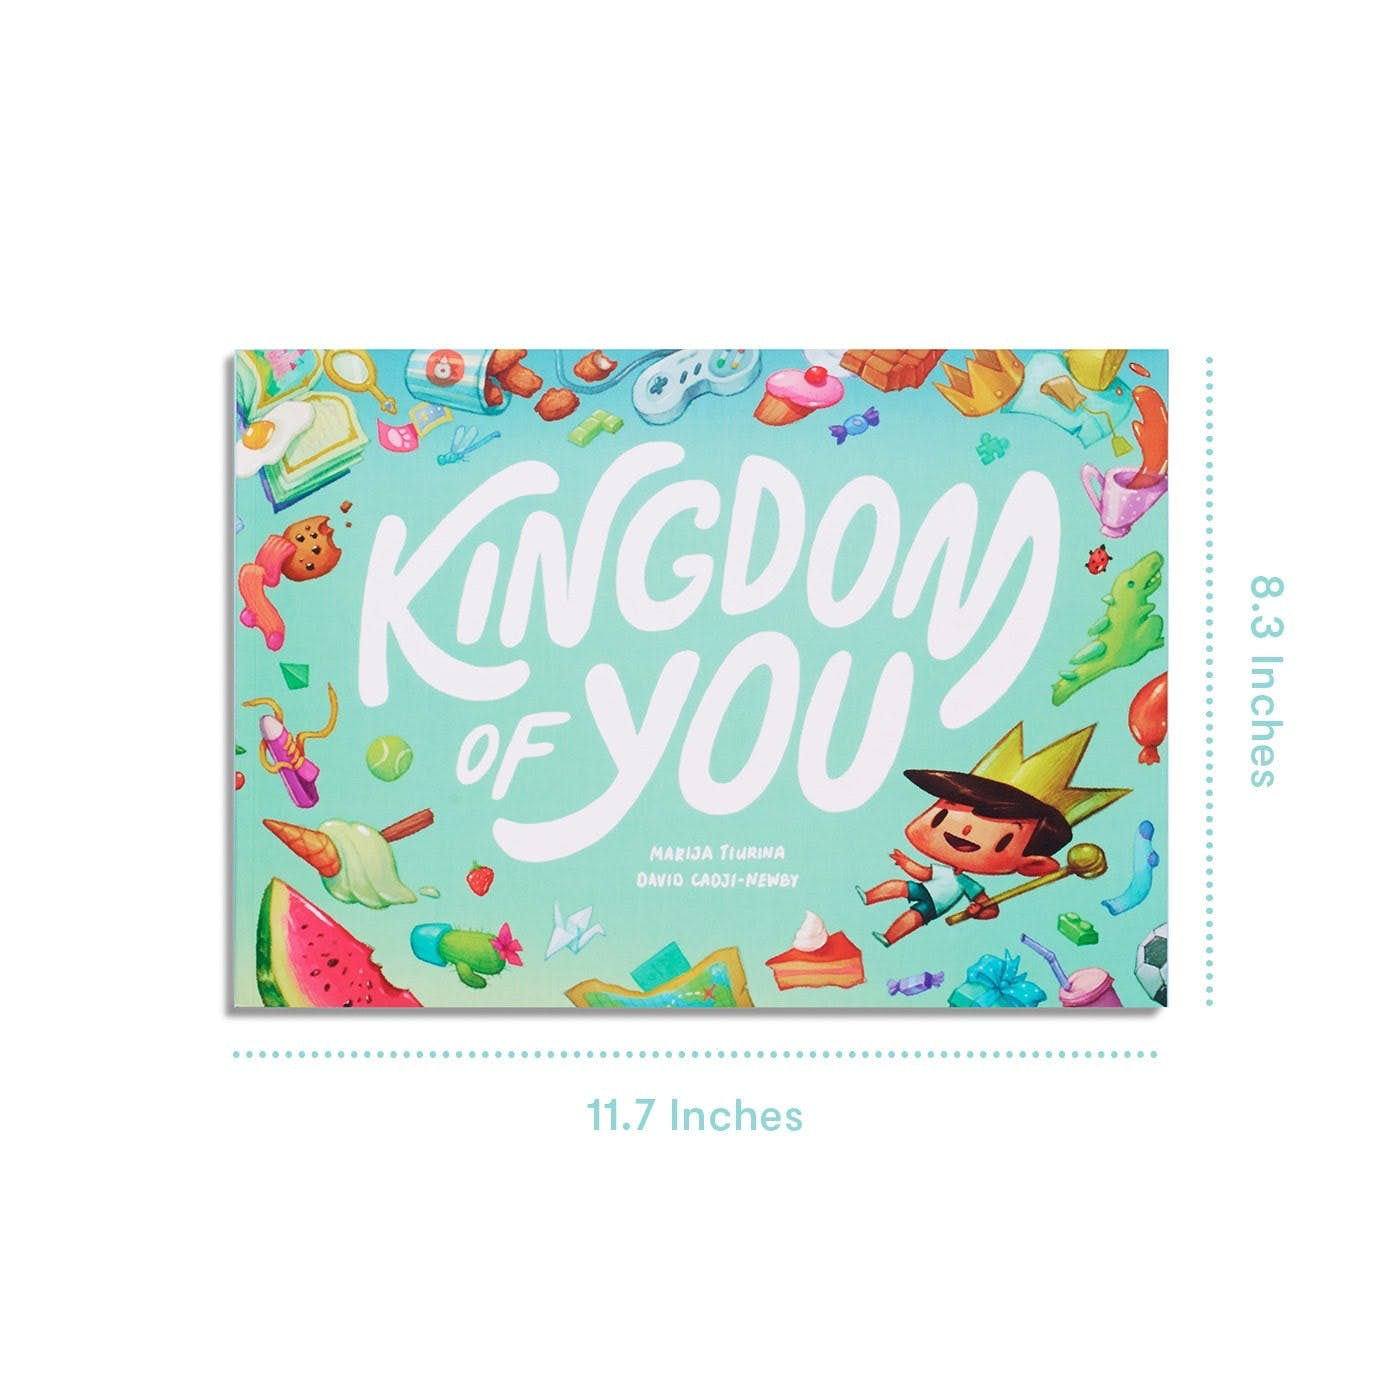 Kingdom of You - Product Specification  of the dimensions of the book